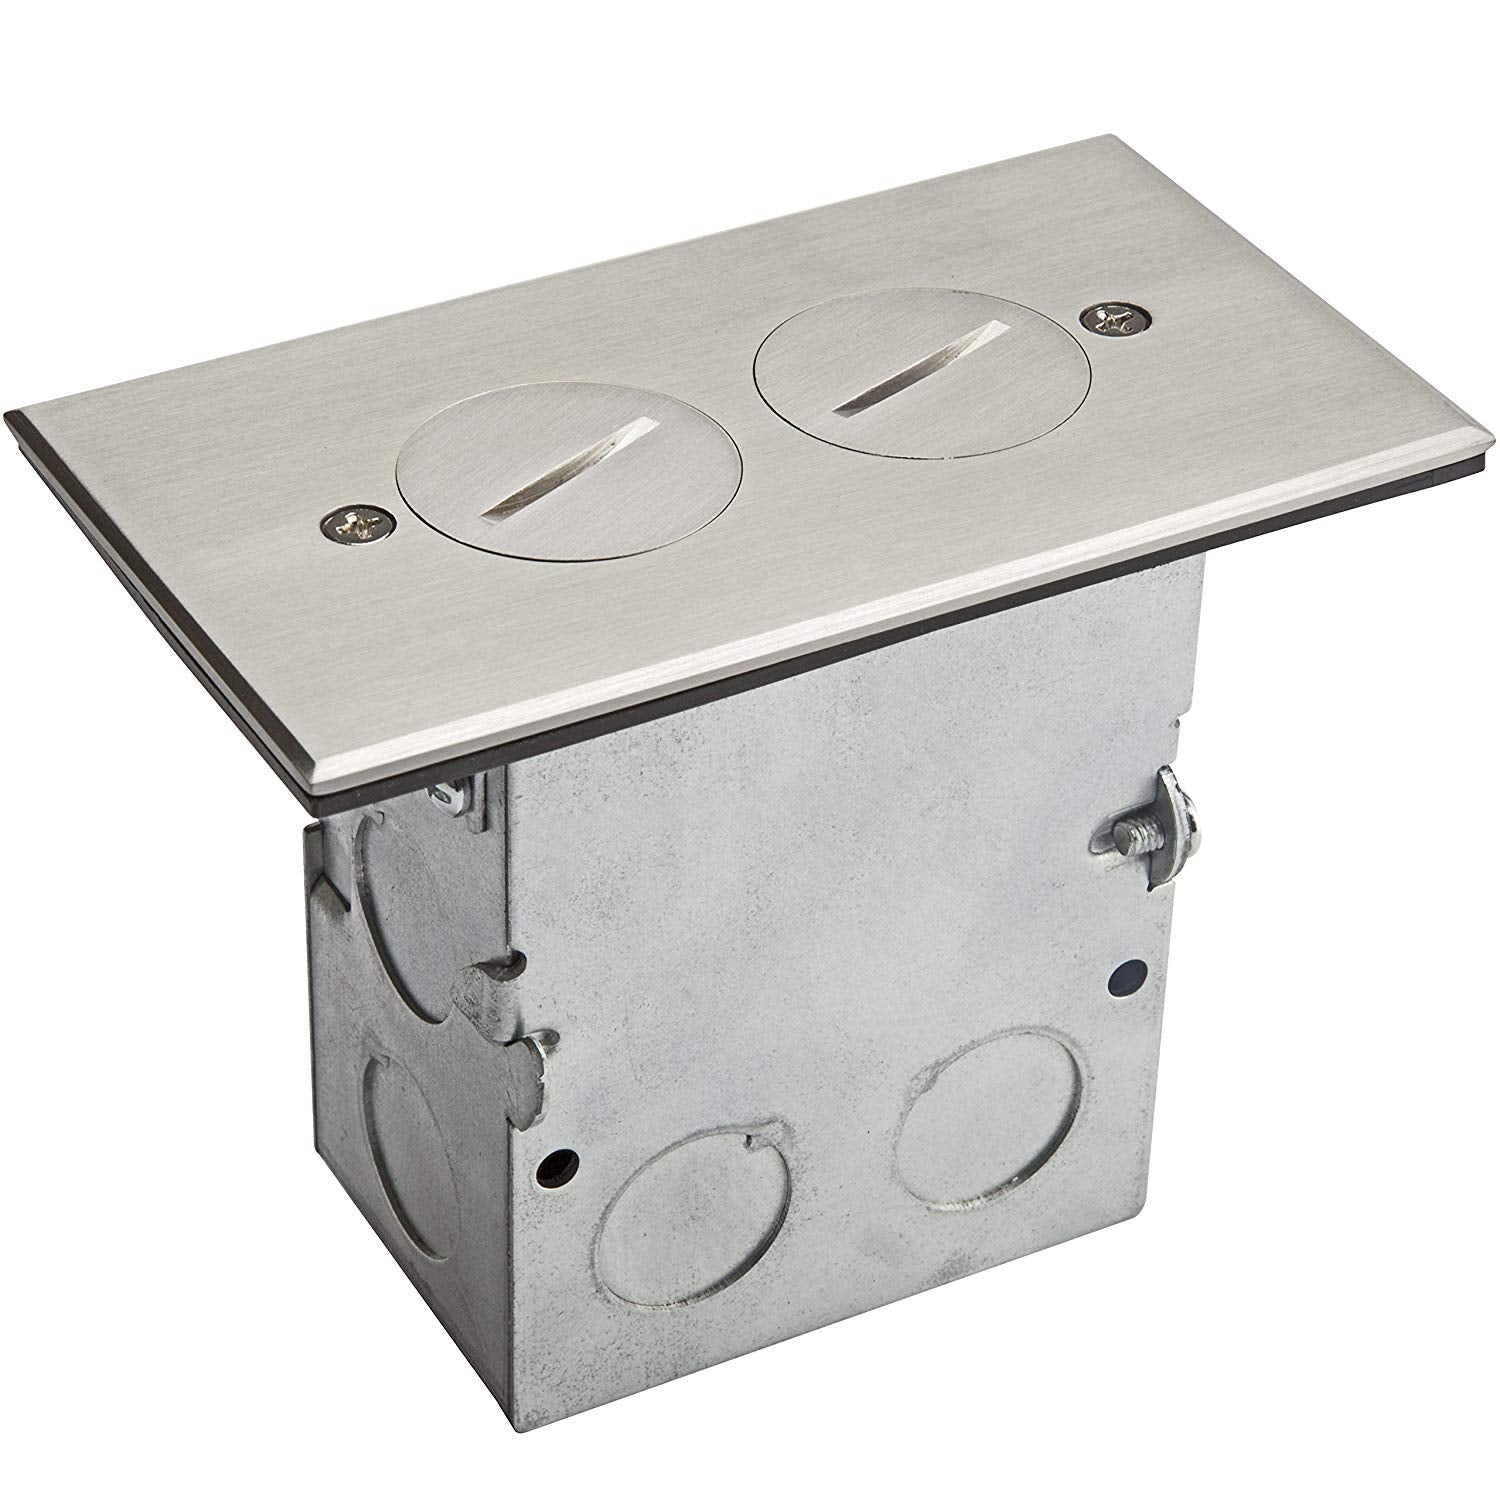 Floor Box 1-Gang Coin Open Receptacle, 1 Gang 20A Tamper Weather Resistant Duplex Receptacle